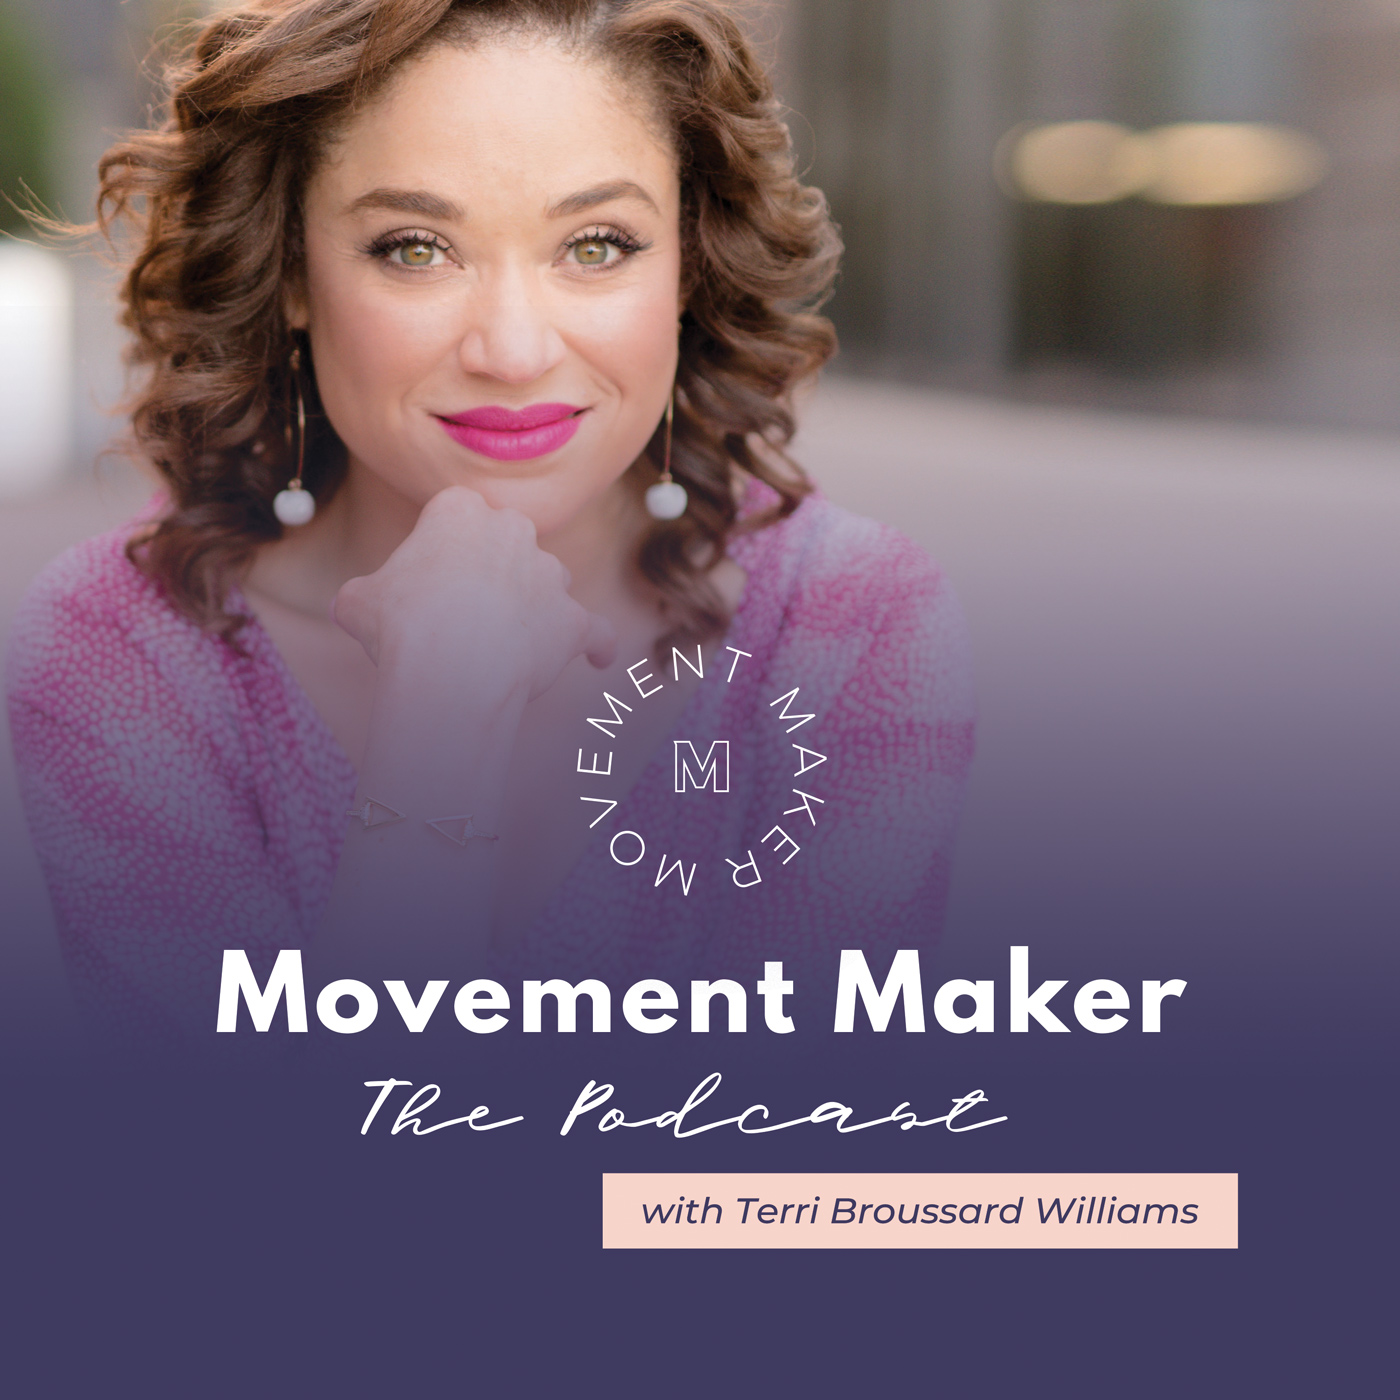 Movement Maker: The Podcast with Terri Broussard Williams show art